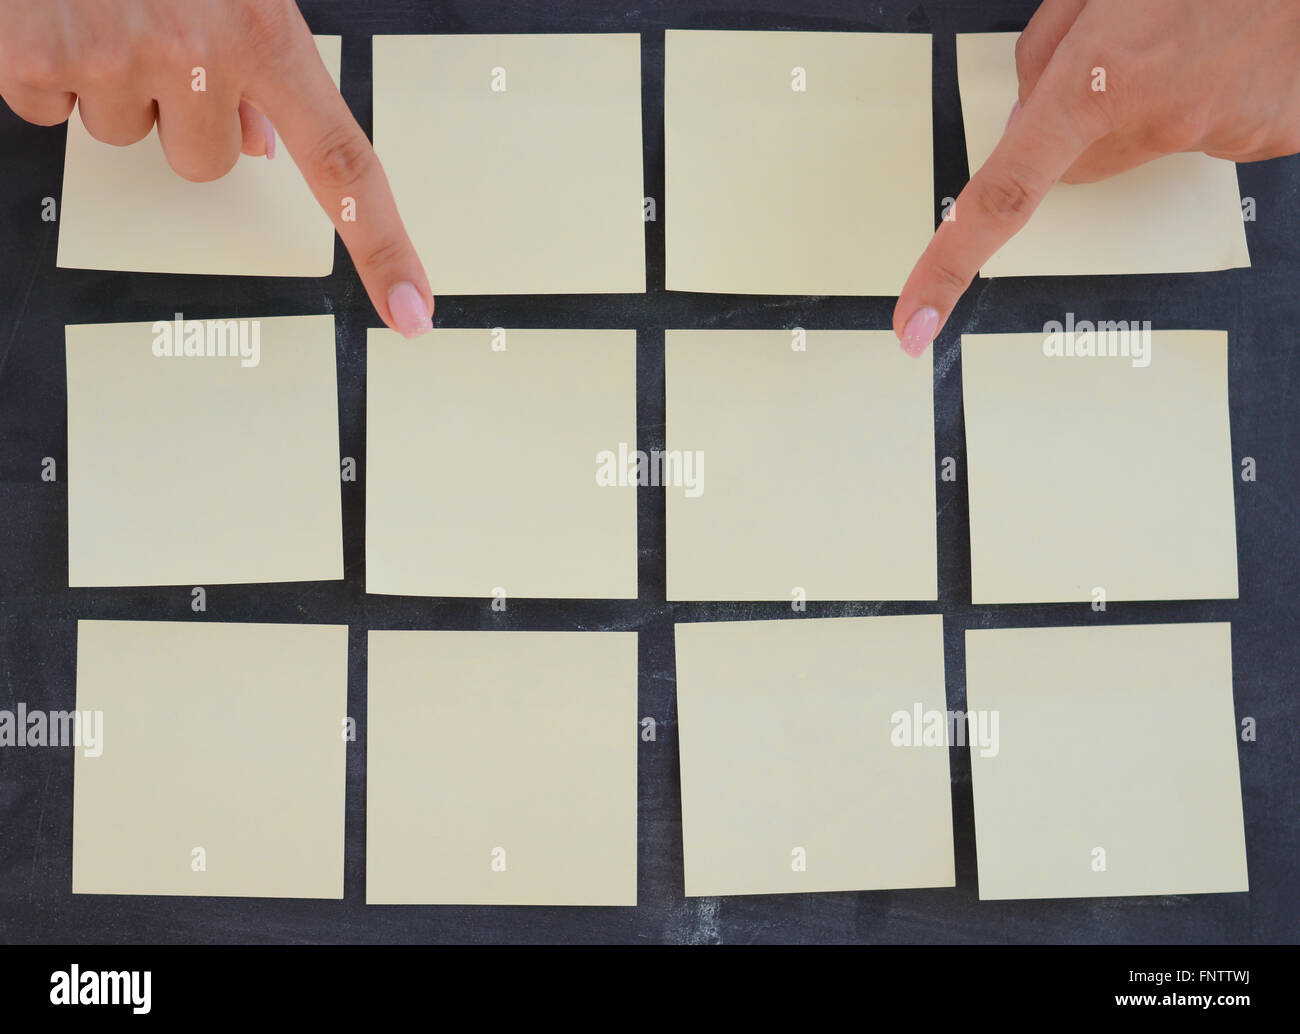 Woman hand posting empty adhesive notes on blackboard - Stock Image